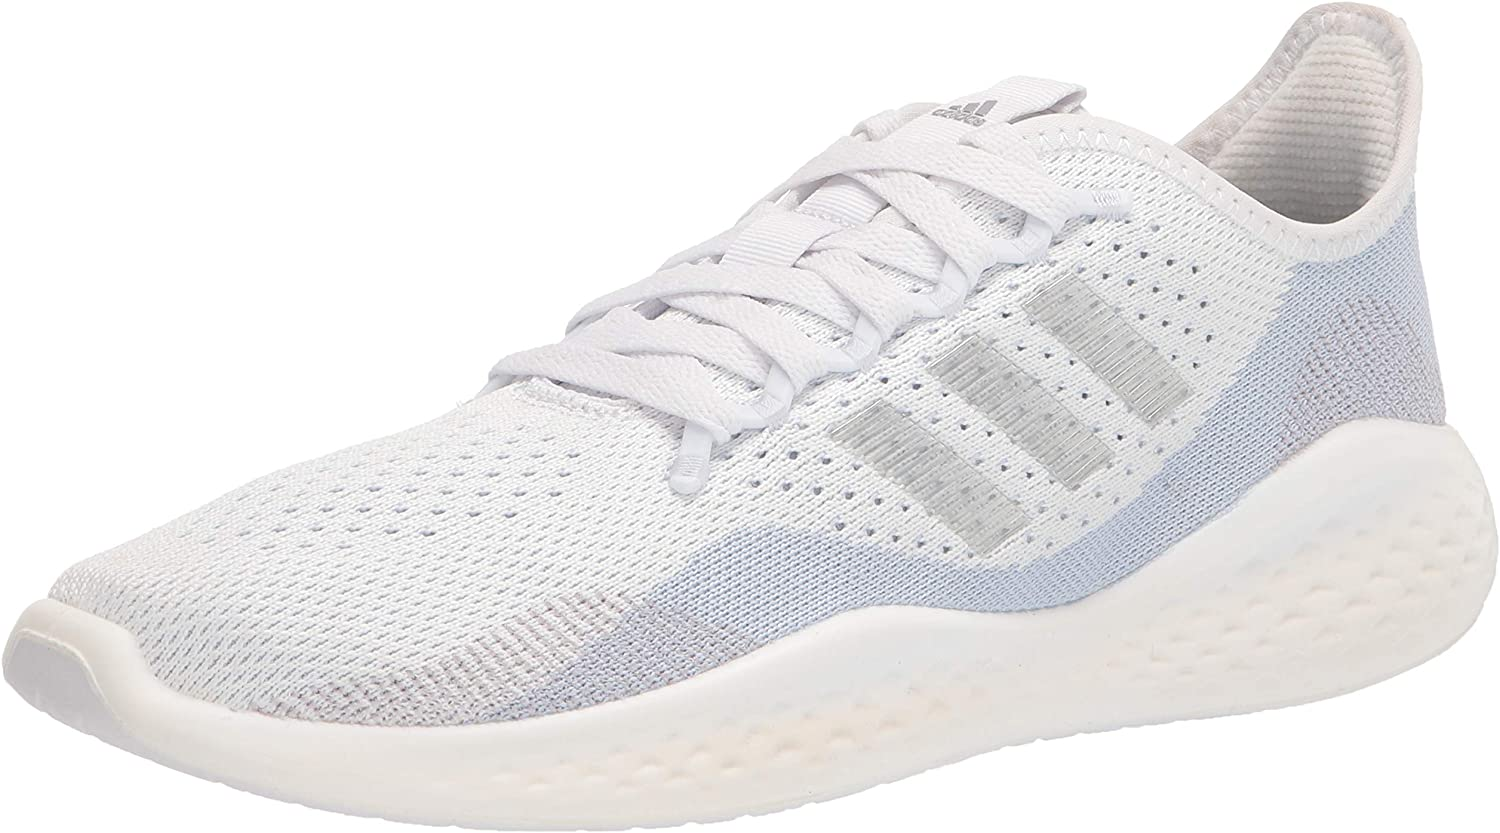 adidas National products Women's Quality inspection Fluidflow Shoes 2.0 Running